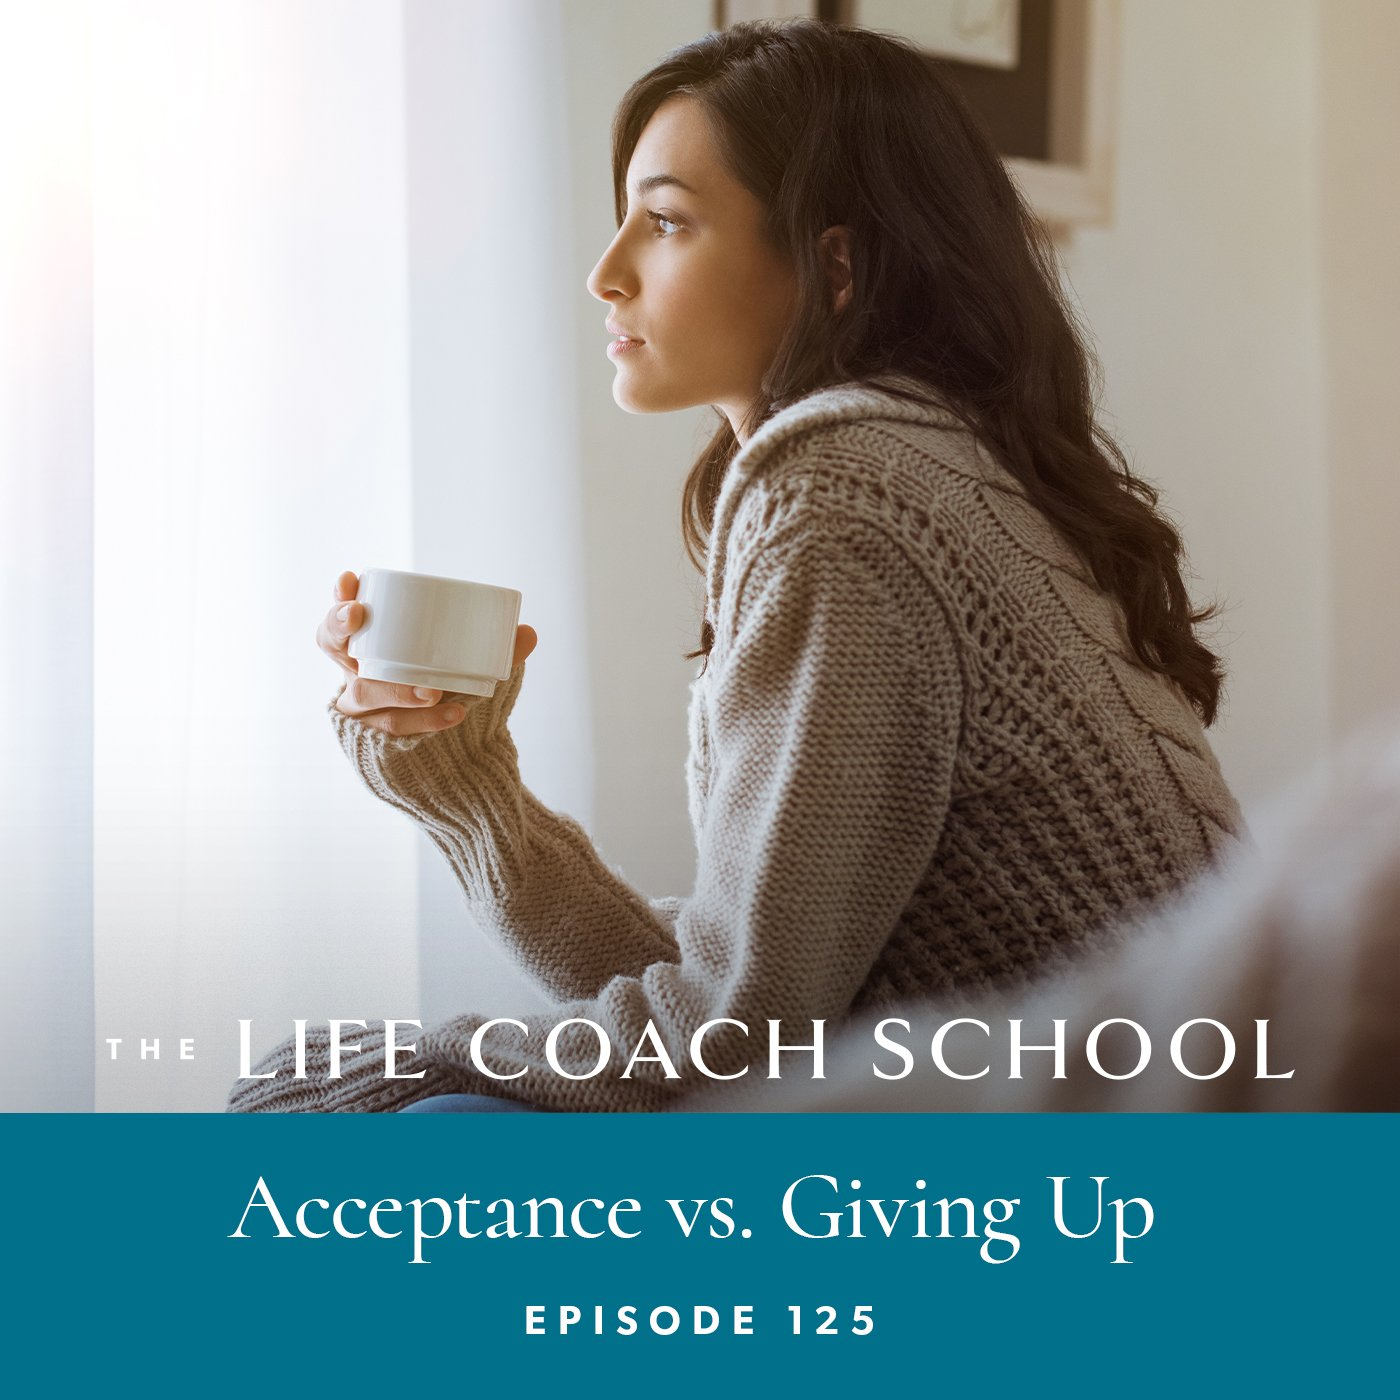 The Life Coach School Podcast with Brooke Castillo | Episode 125 | Acceptance vs Giving Up